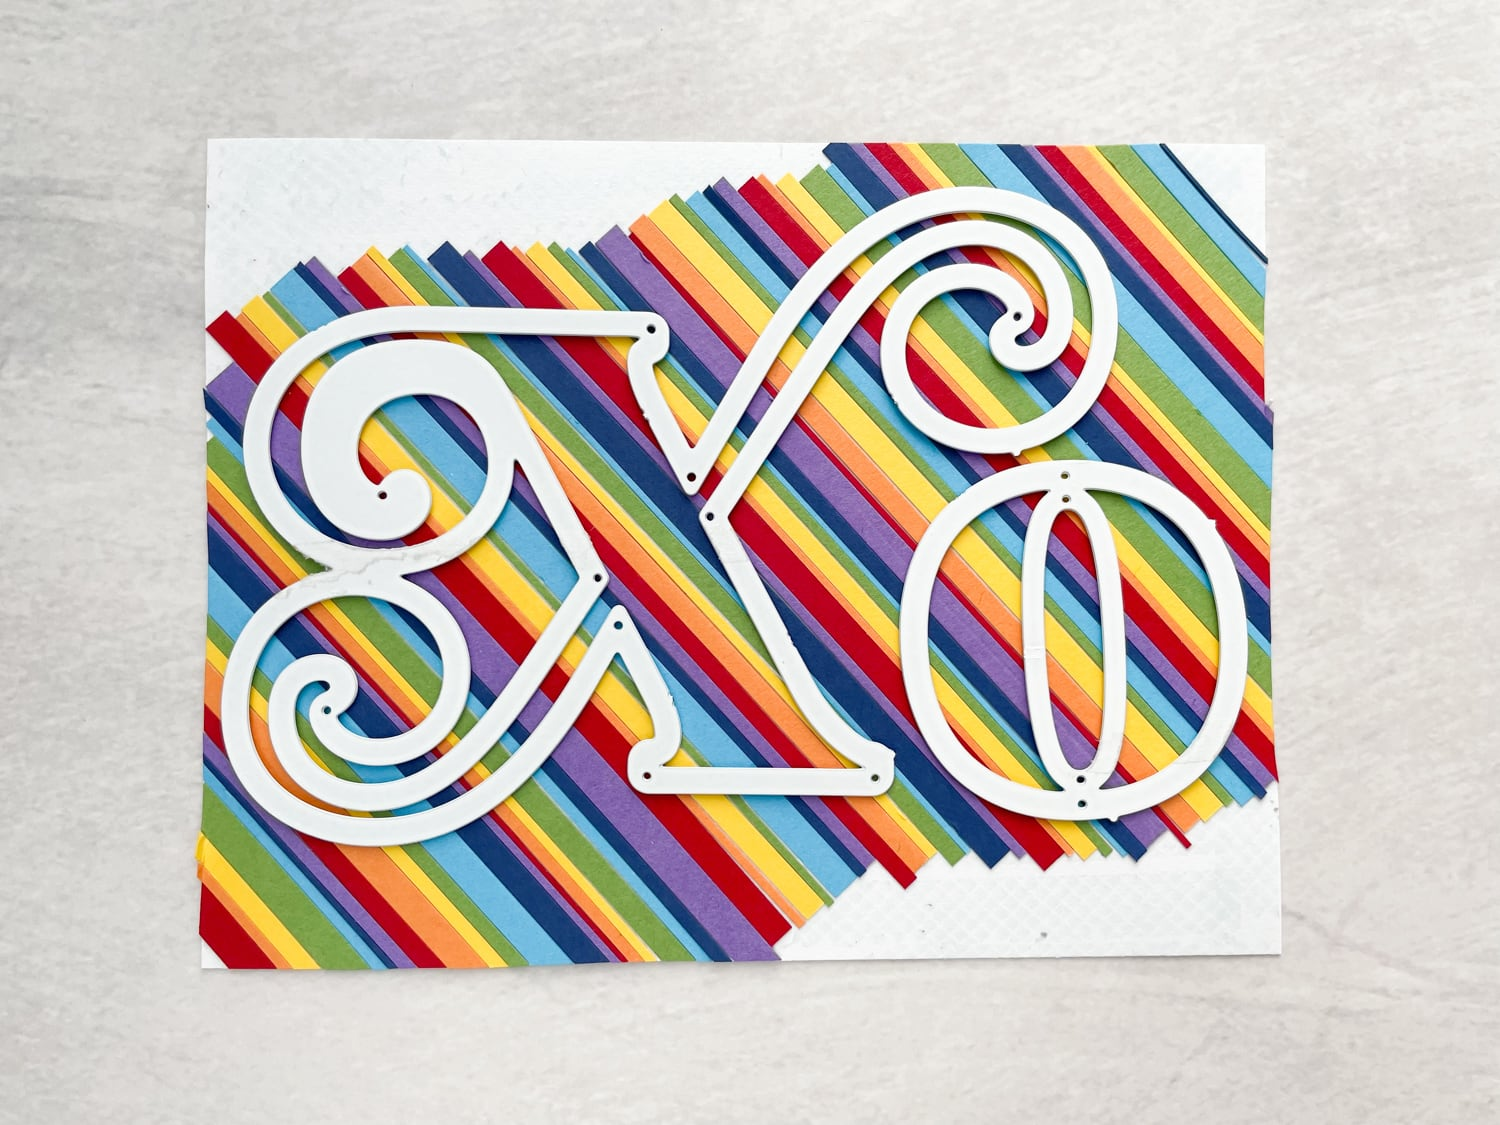 cutting xo out of rainbow paper strips